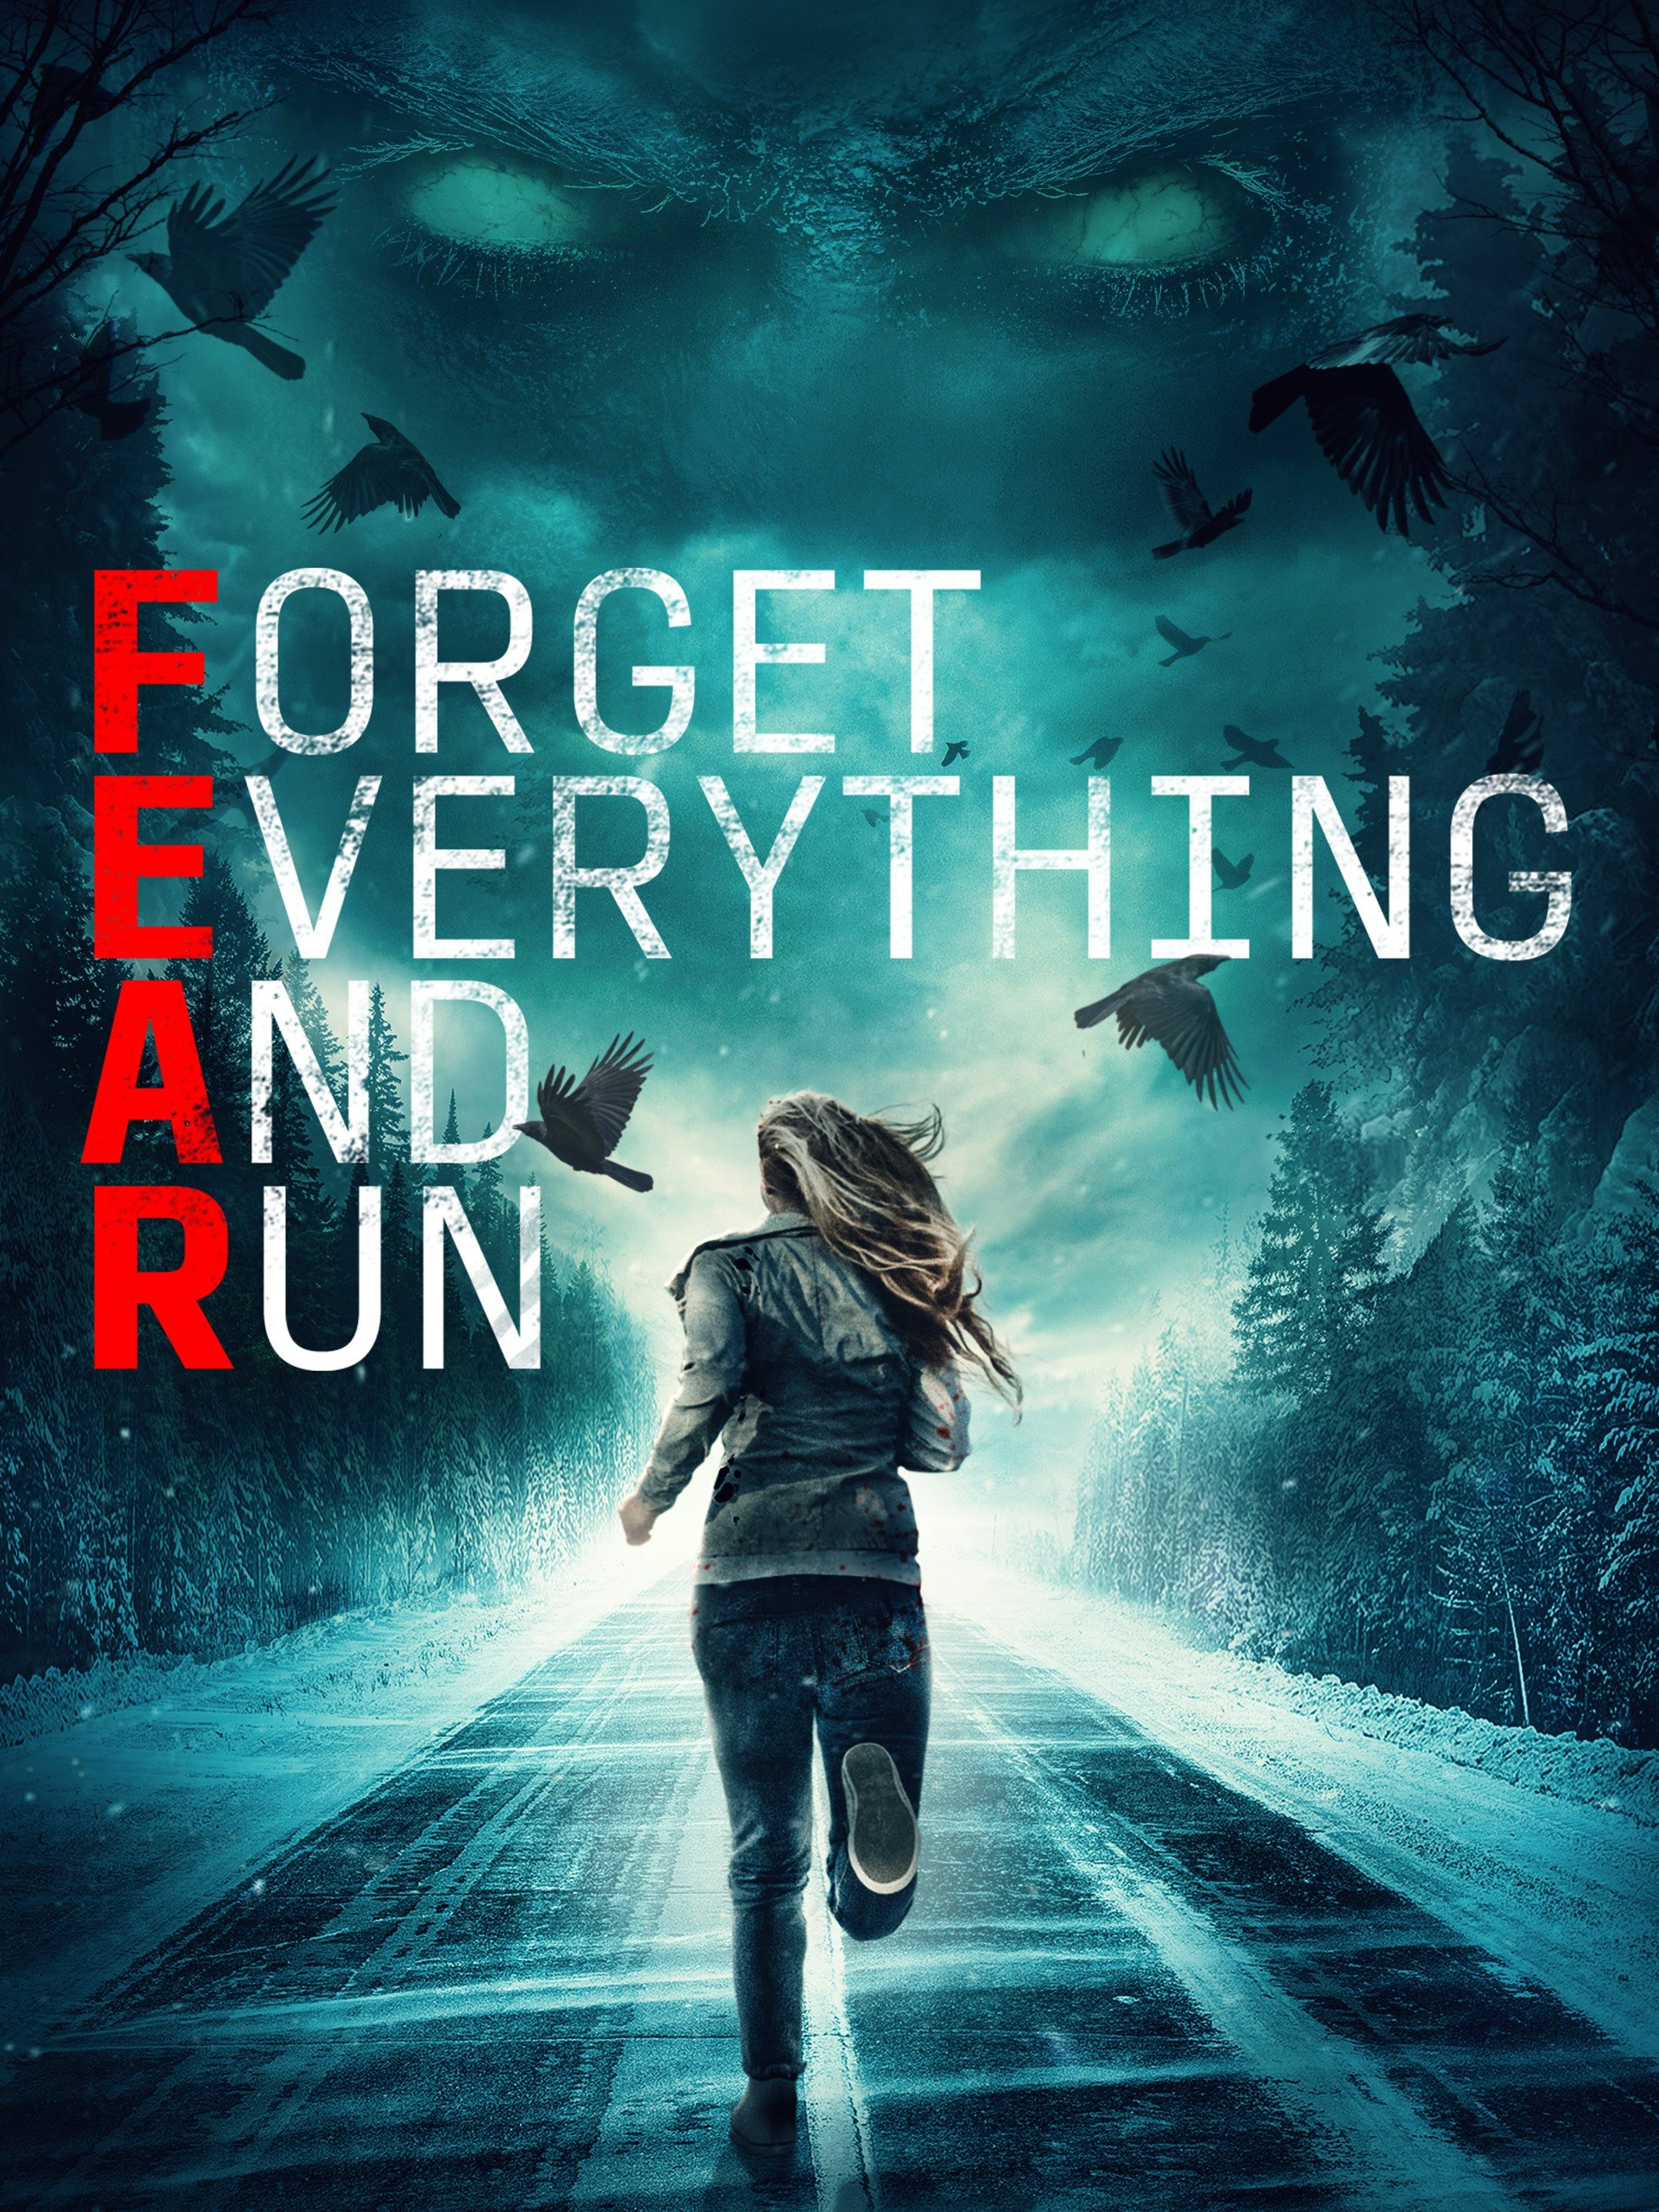 Forget Everything and Run (2021) Bengali Dubbed (Voice Over) WEBRip 720p [Full Movie] 1XBET